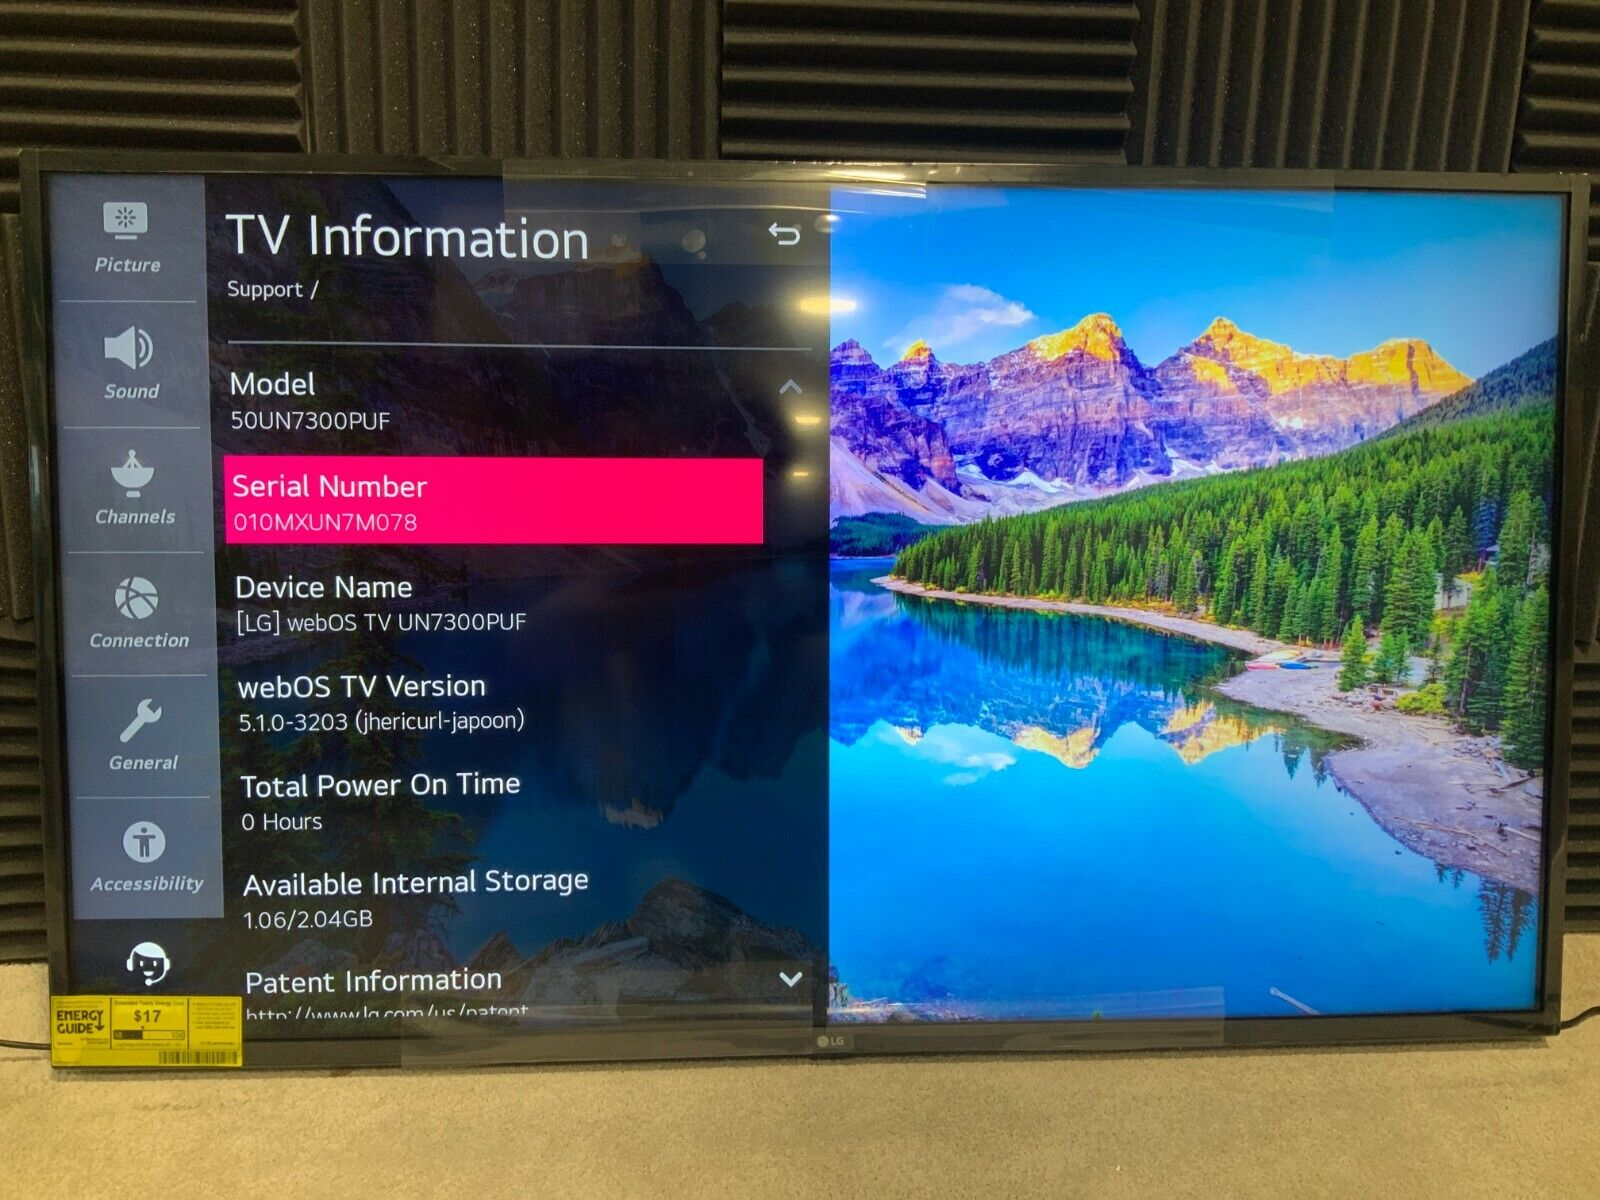 LG Electronics 50 LED LCD Smart TV (4K) 50UN7300PUF  ✅❤️️✅❤️️. Available Now for 359.99